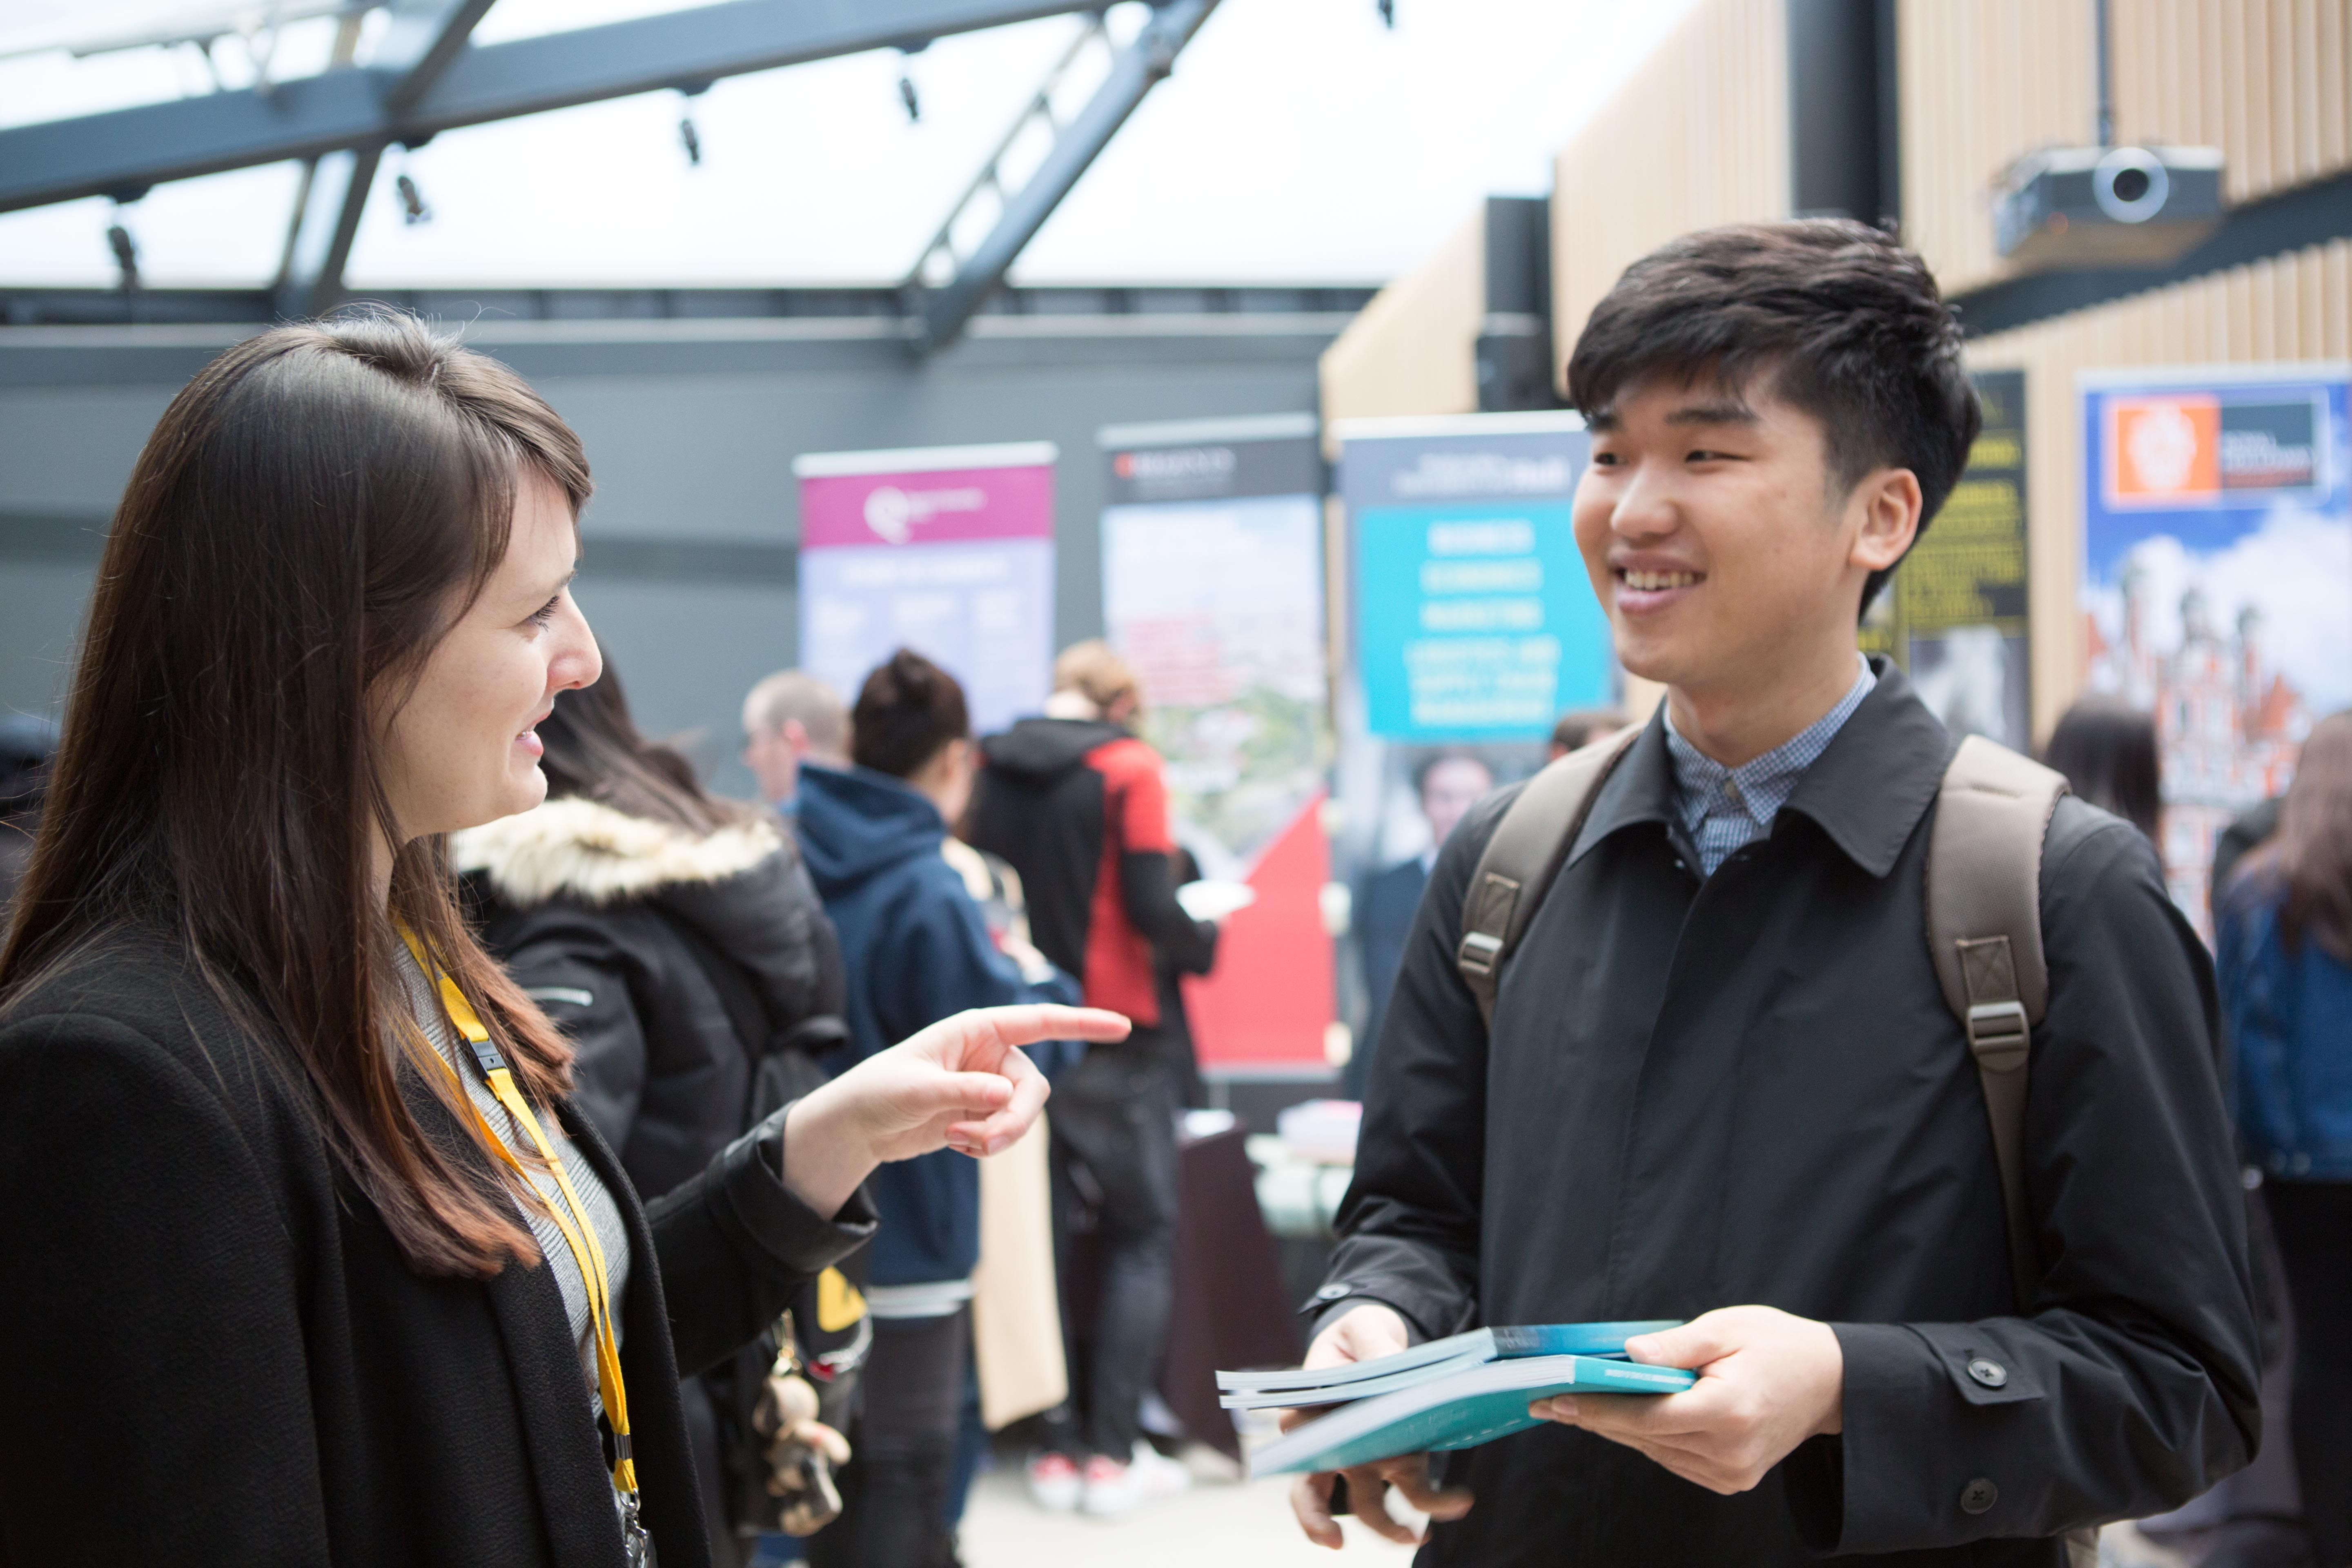 International student speaking to representative at University exhibition stand